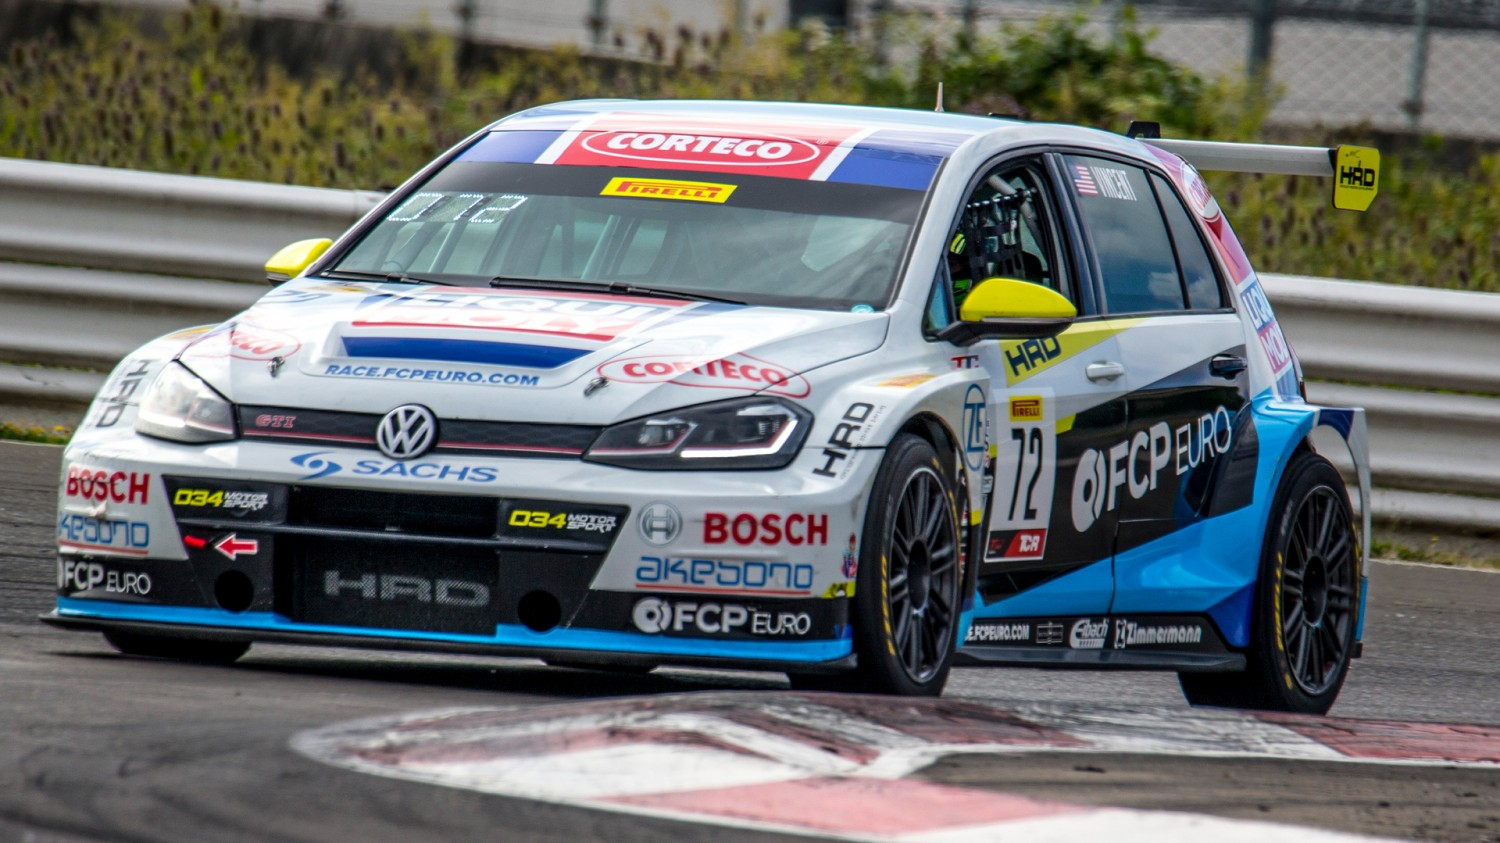 Vincent/Putt Fastest in TCR/TCR Cup Practice 1, Haldeman tops TCA Charts